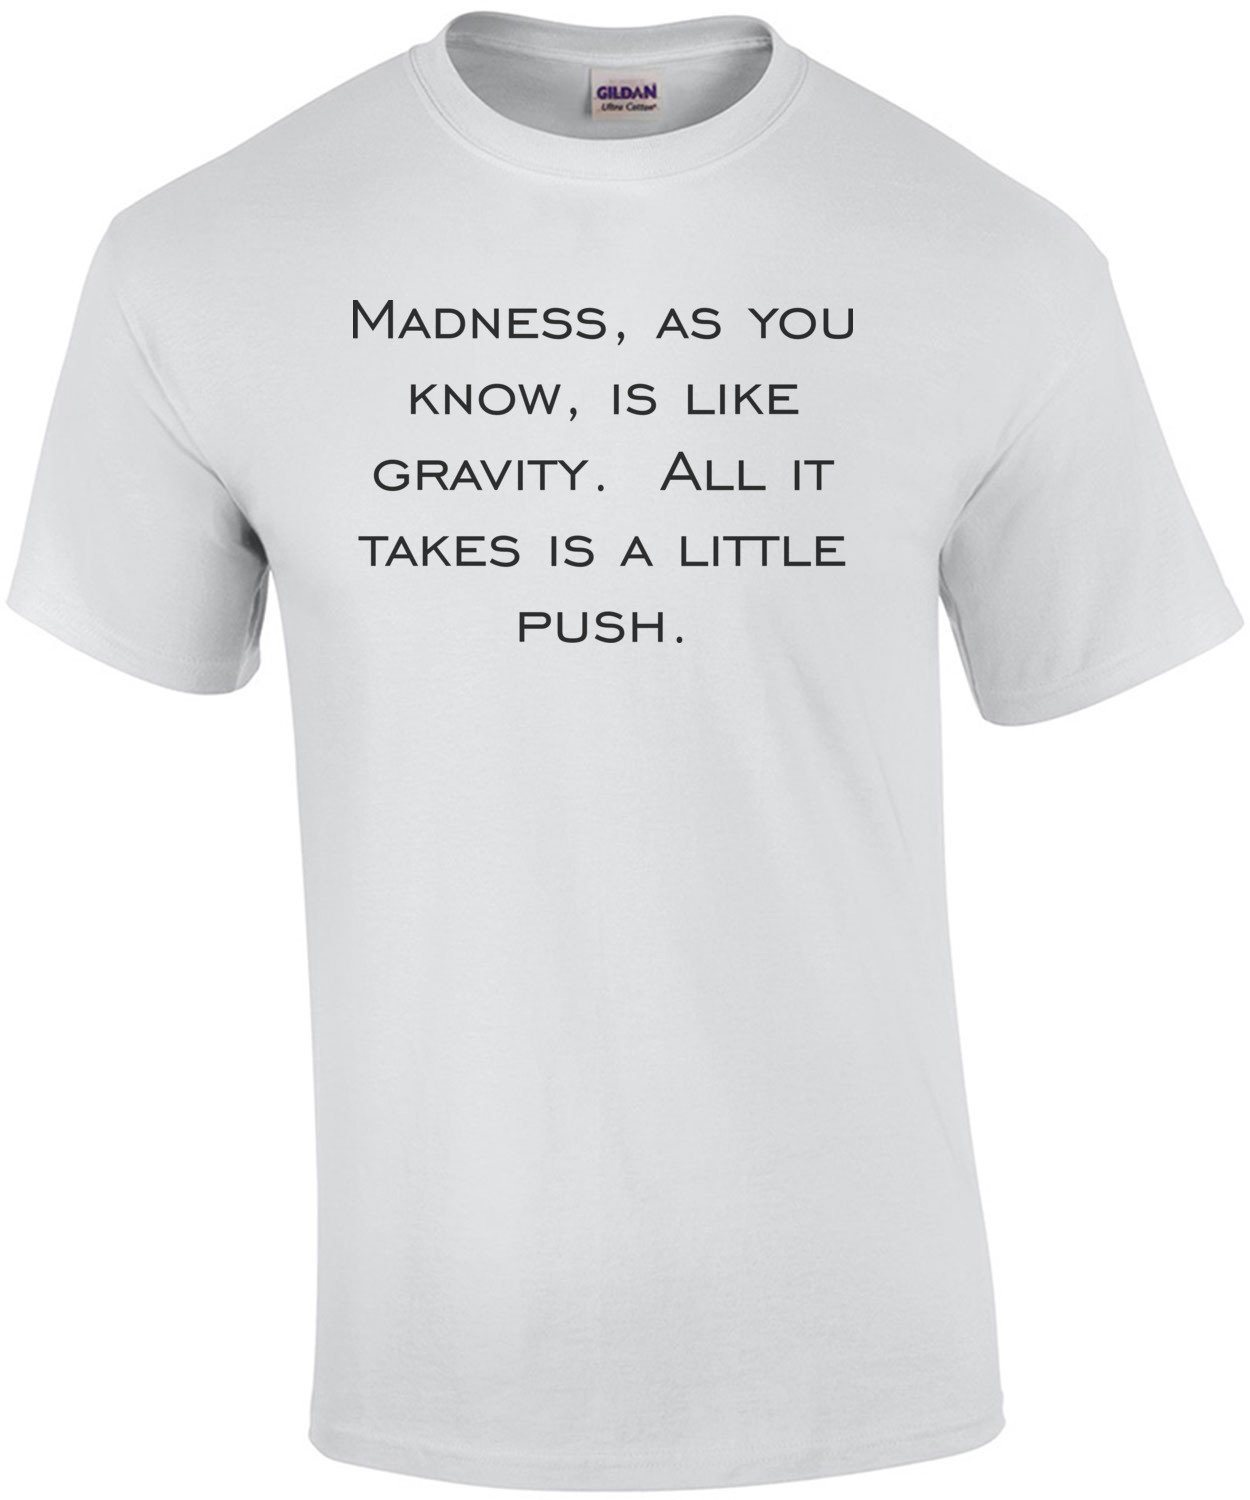 Madness, as you know, is like gravity.  All it takes is a little push. Shirt